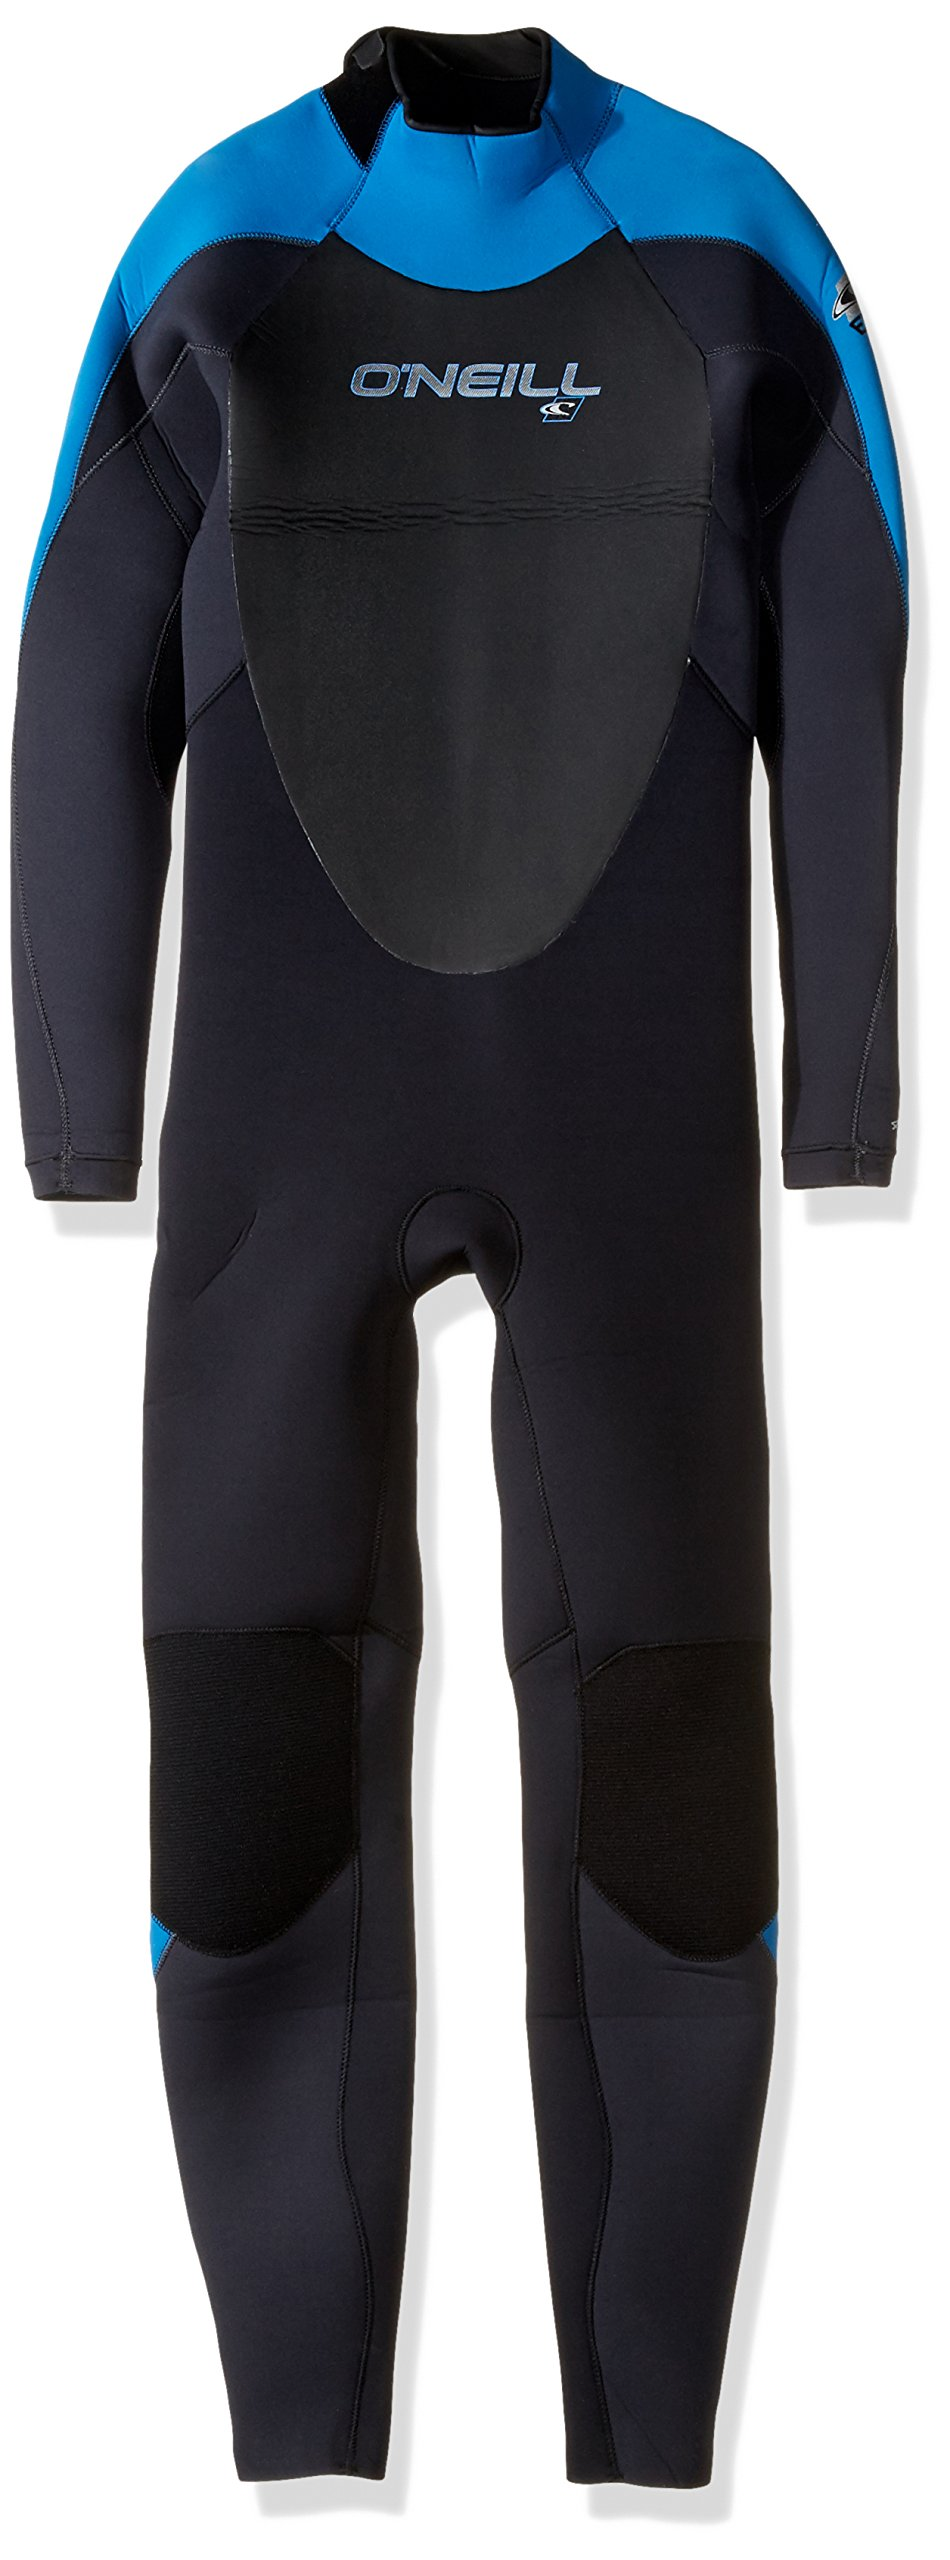 O'Neill Youth Epic 4/3mm Back Zip Full Wetsuit, Black/Graphite, 16 by O'Neill Wetsuits